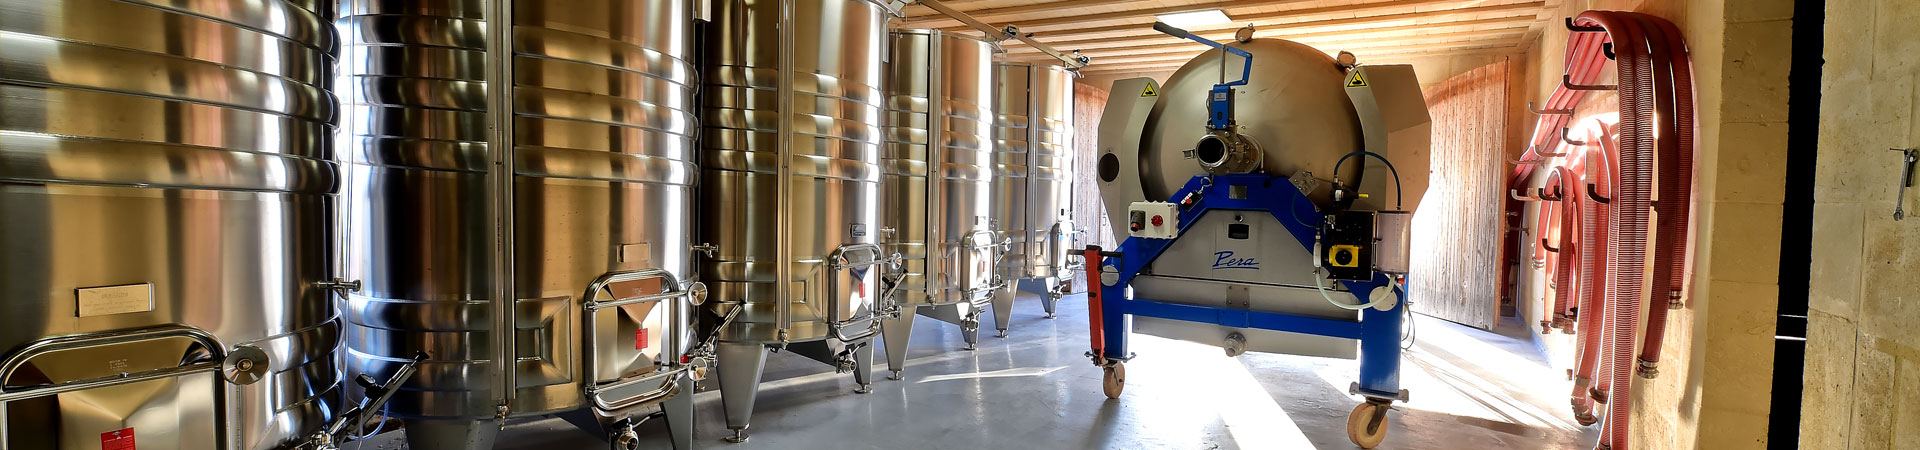 Pera Pellenc, winemaking equipment: press manufacturer